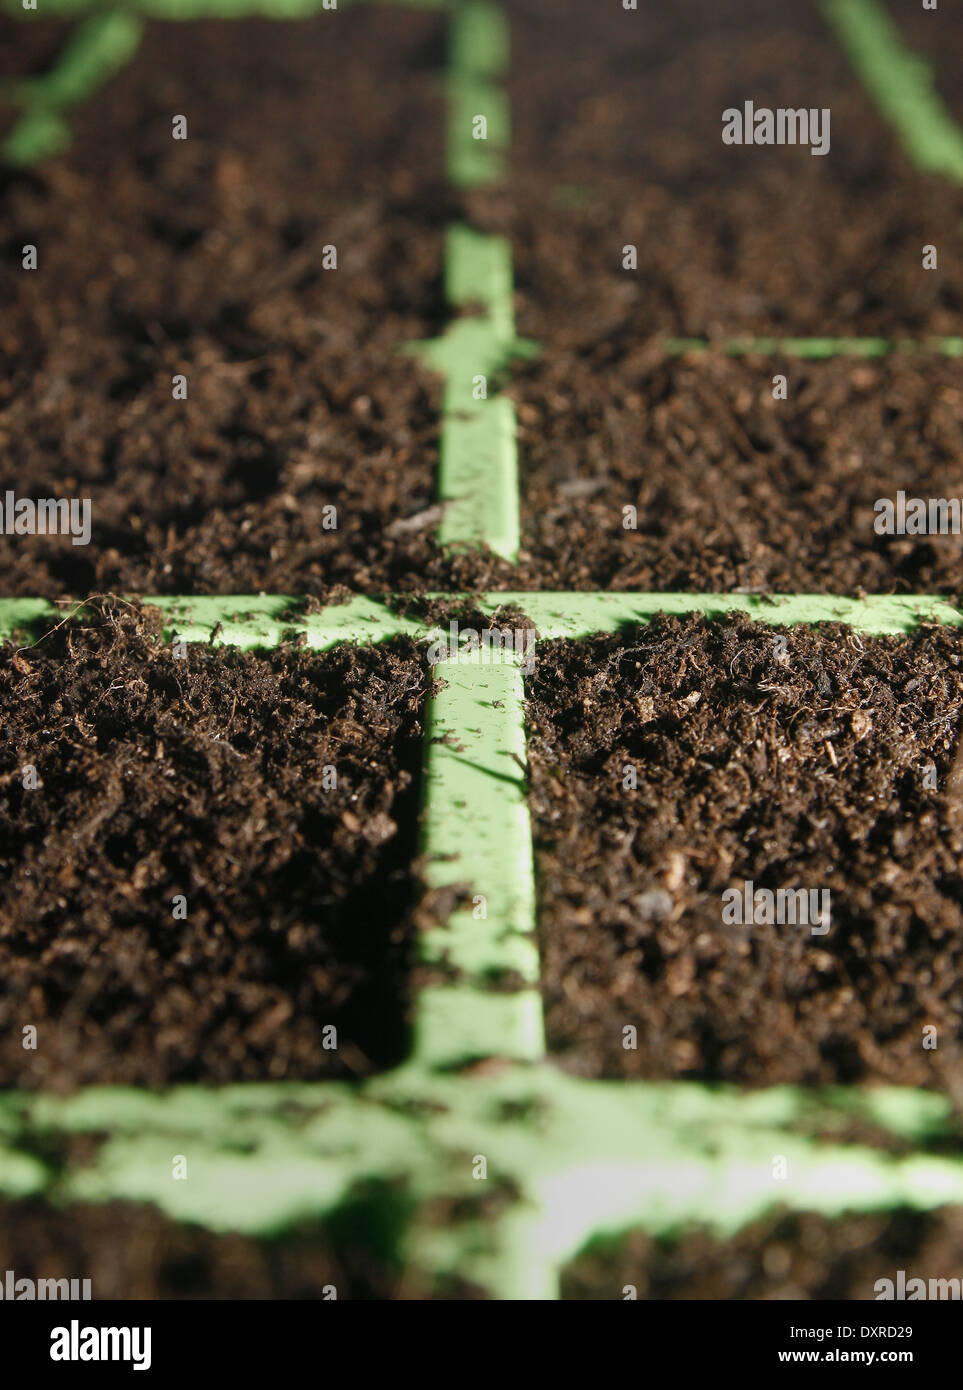 close up image of seed modules filled with compost - Stock Image